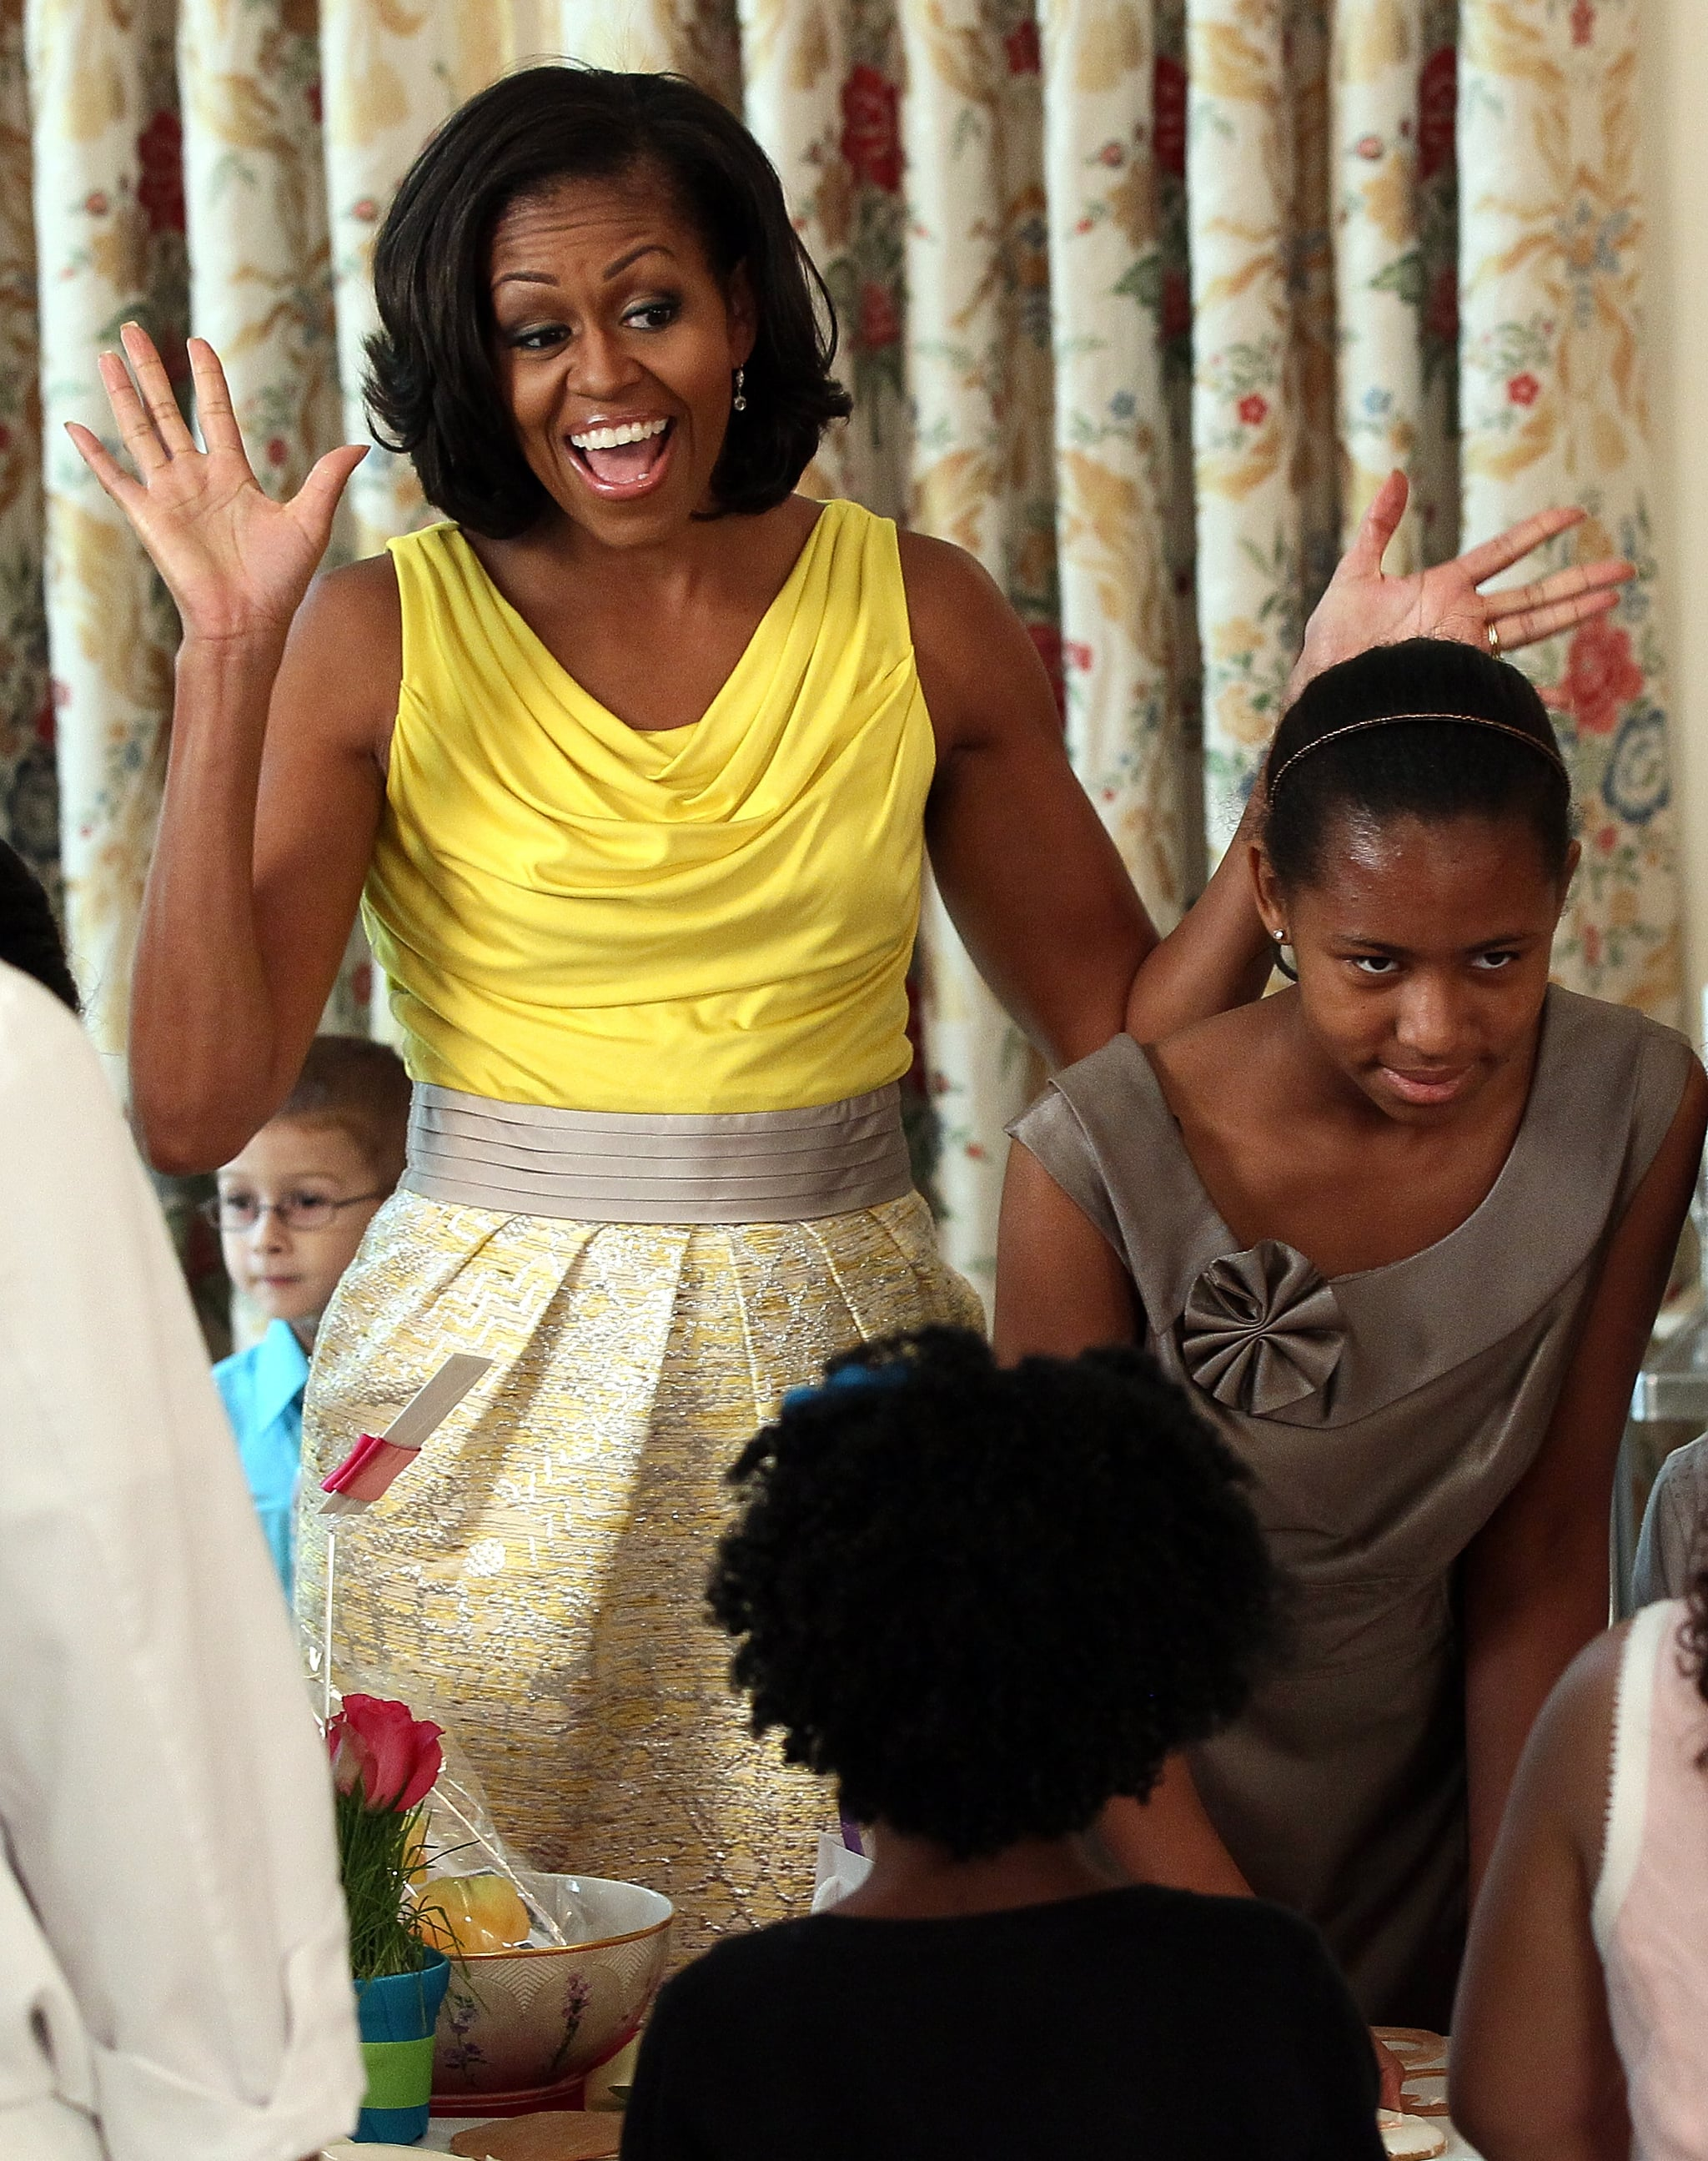 Michelle attended a Mother's Day event in a sunny yellow Rachel Roy dress that she's worn before.